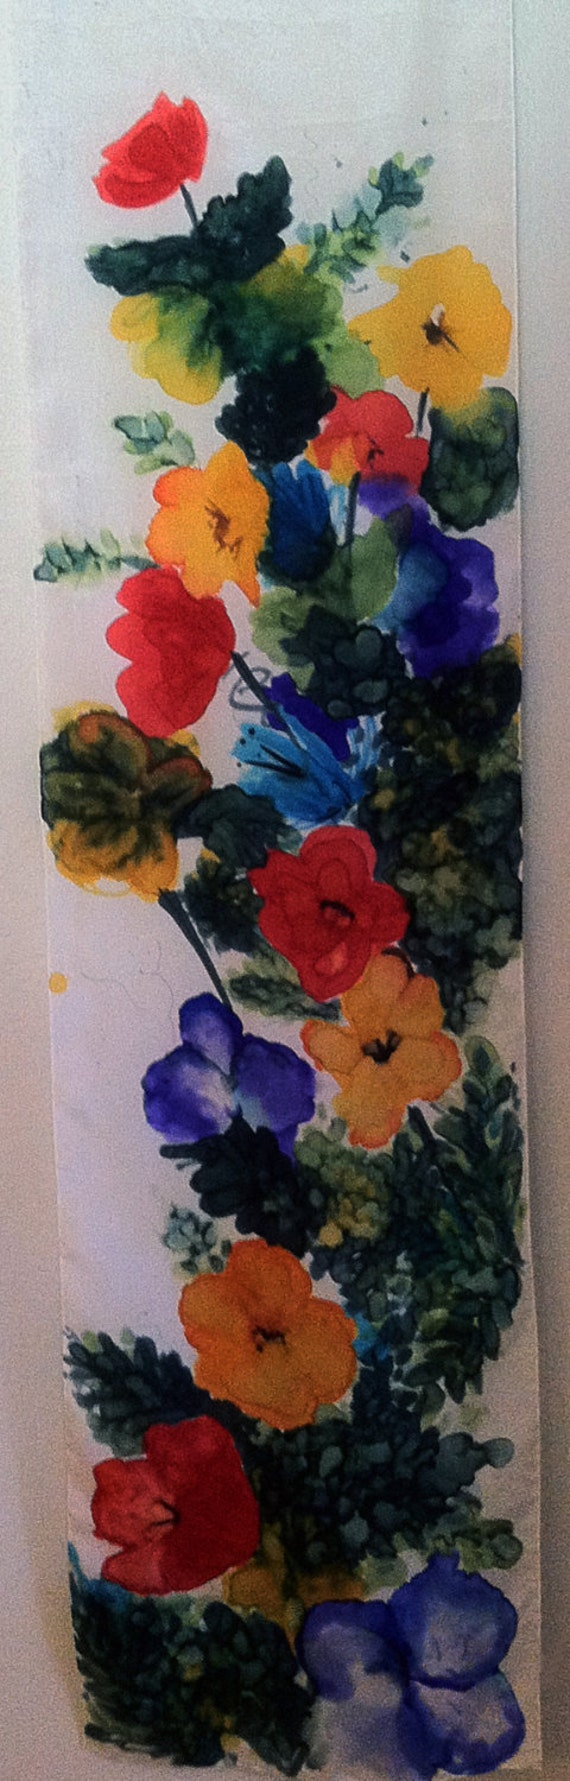 WILDFLOWERS - Hand Painted Silk Wall Hanging